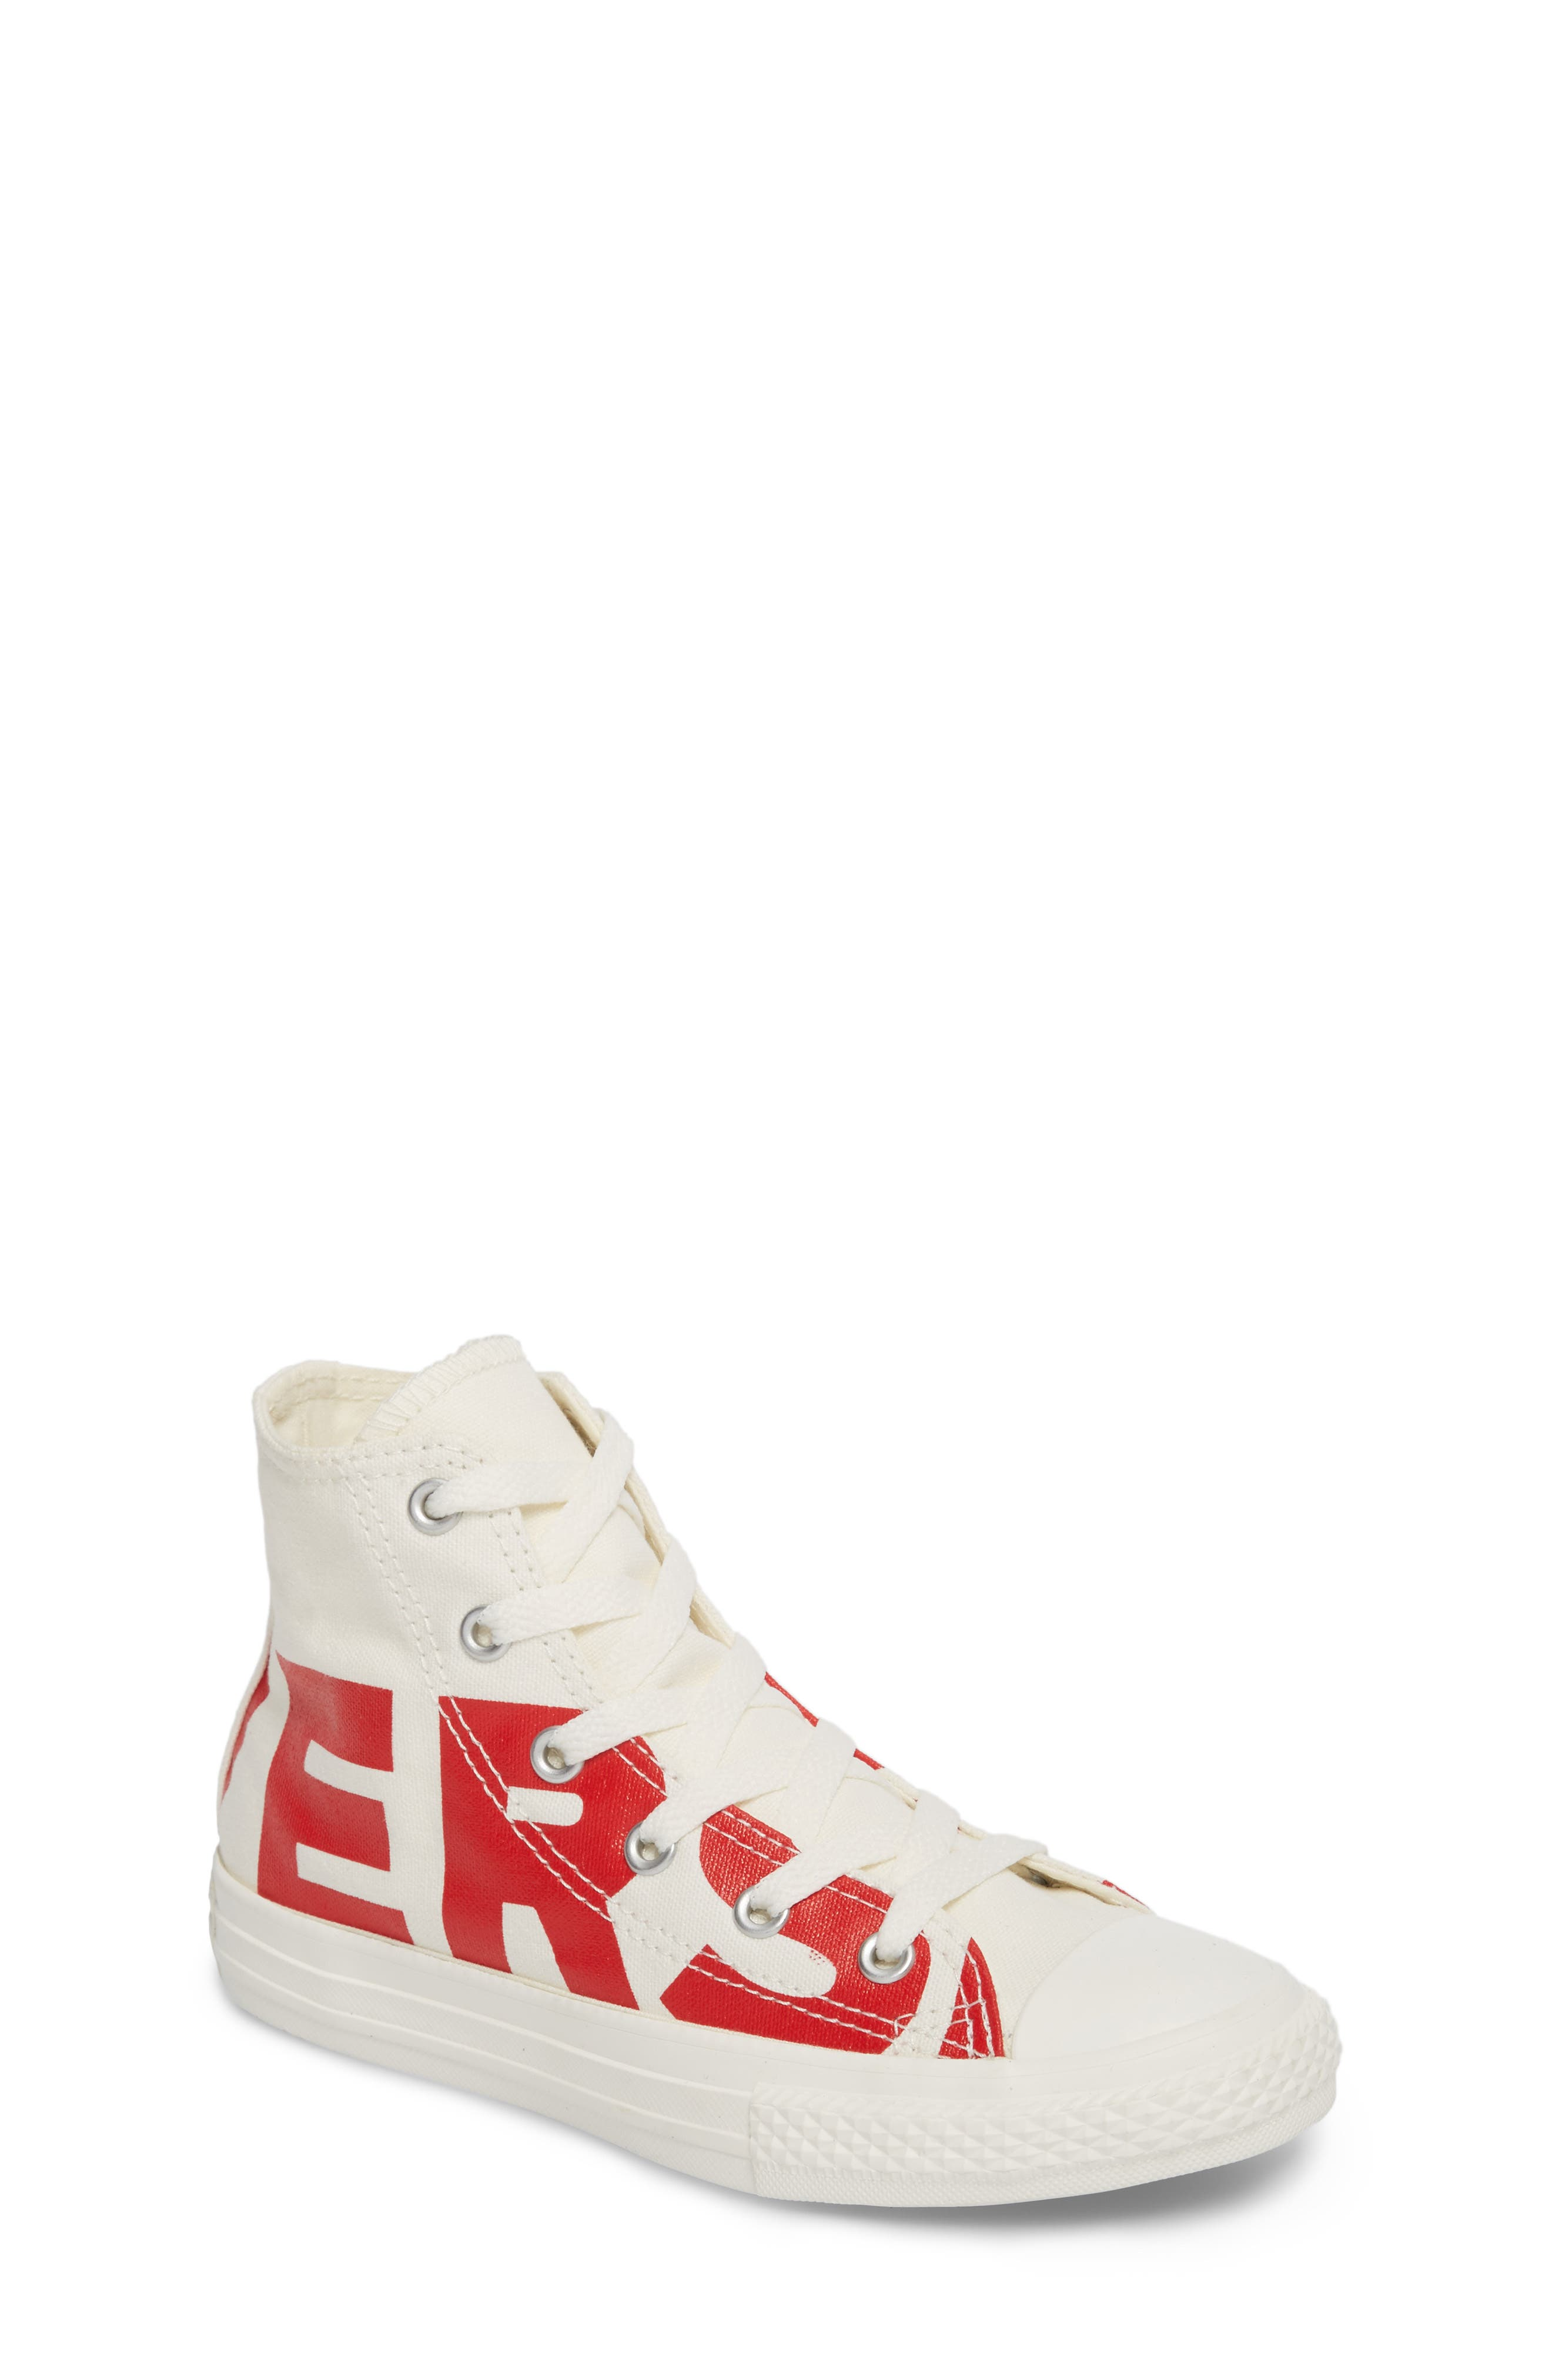 Chuck Taylor<sup>®</sup> All Star<sup>®</sup> Wordmark Hi Sneaker,                         Main,                         color, Enamel Red